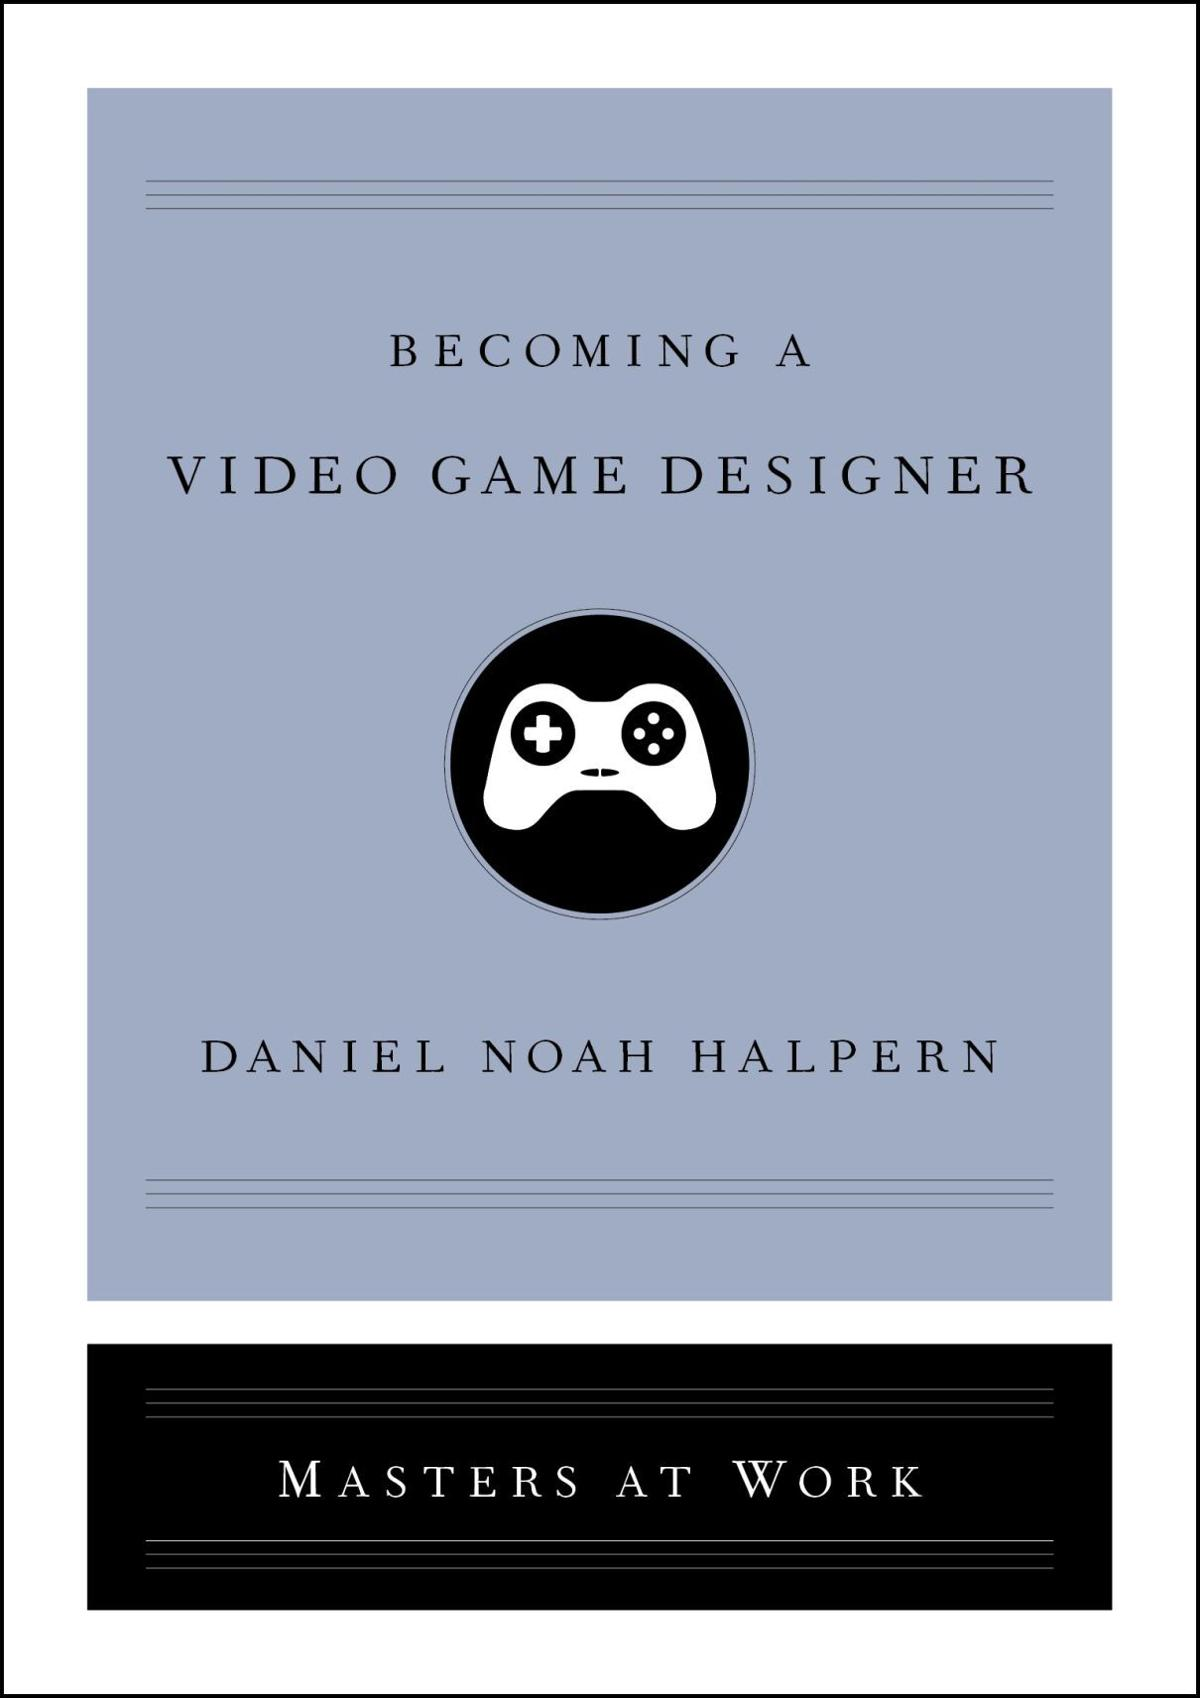 'Becoming a Video Game Designer' cover